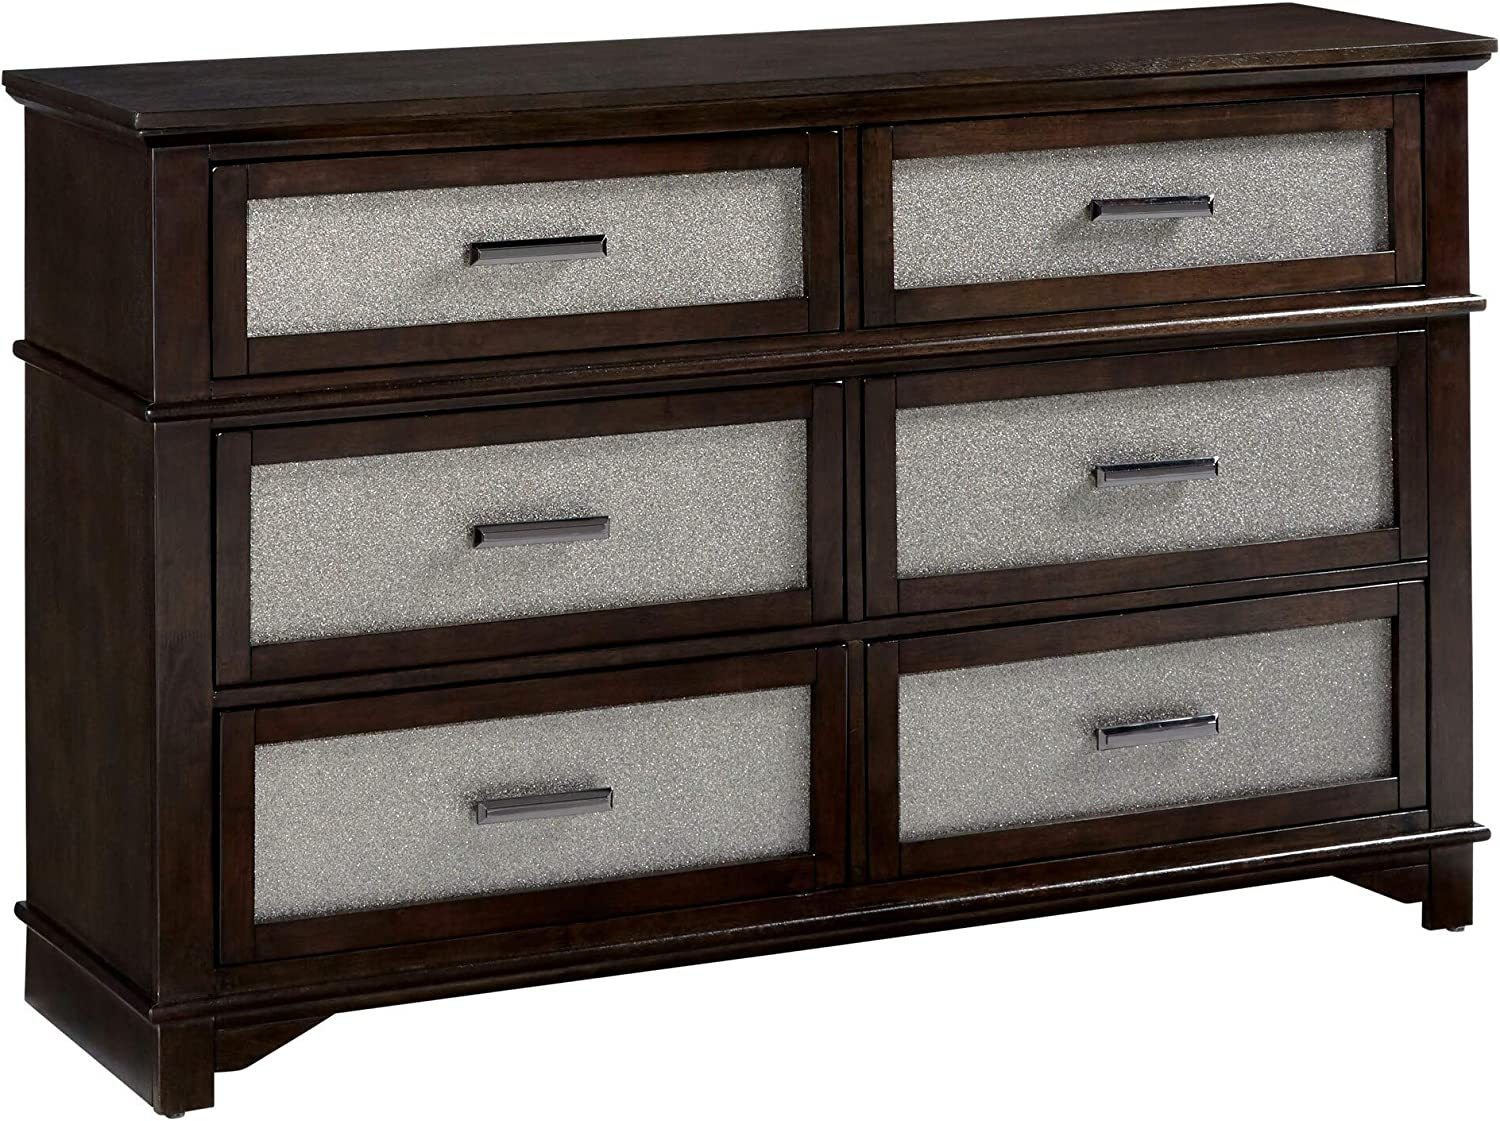 Progressive Furniture Dresser, Brown